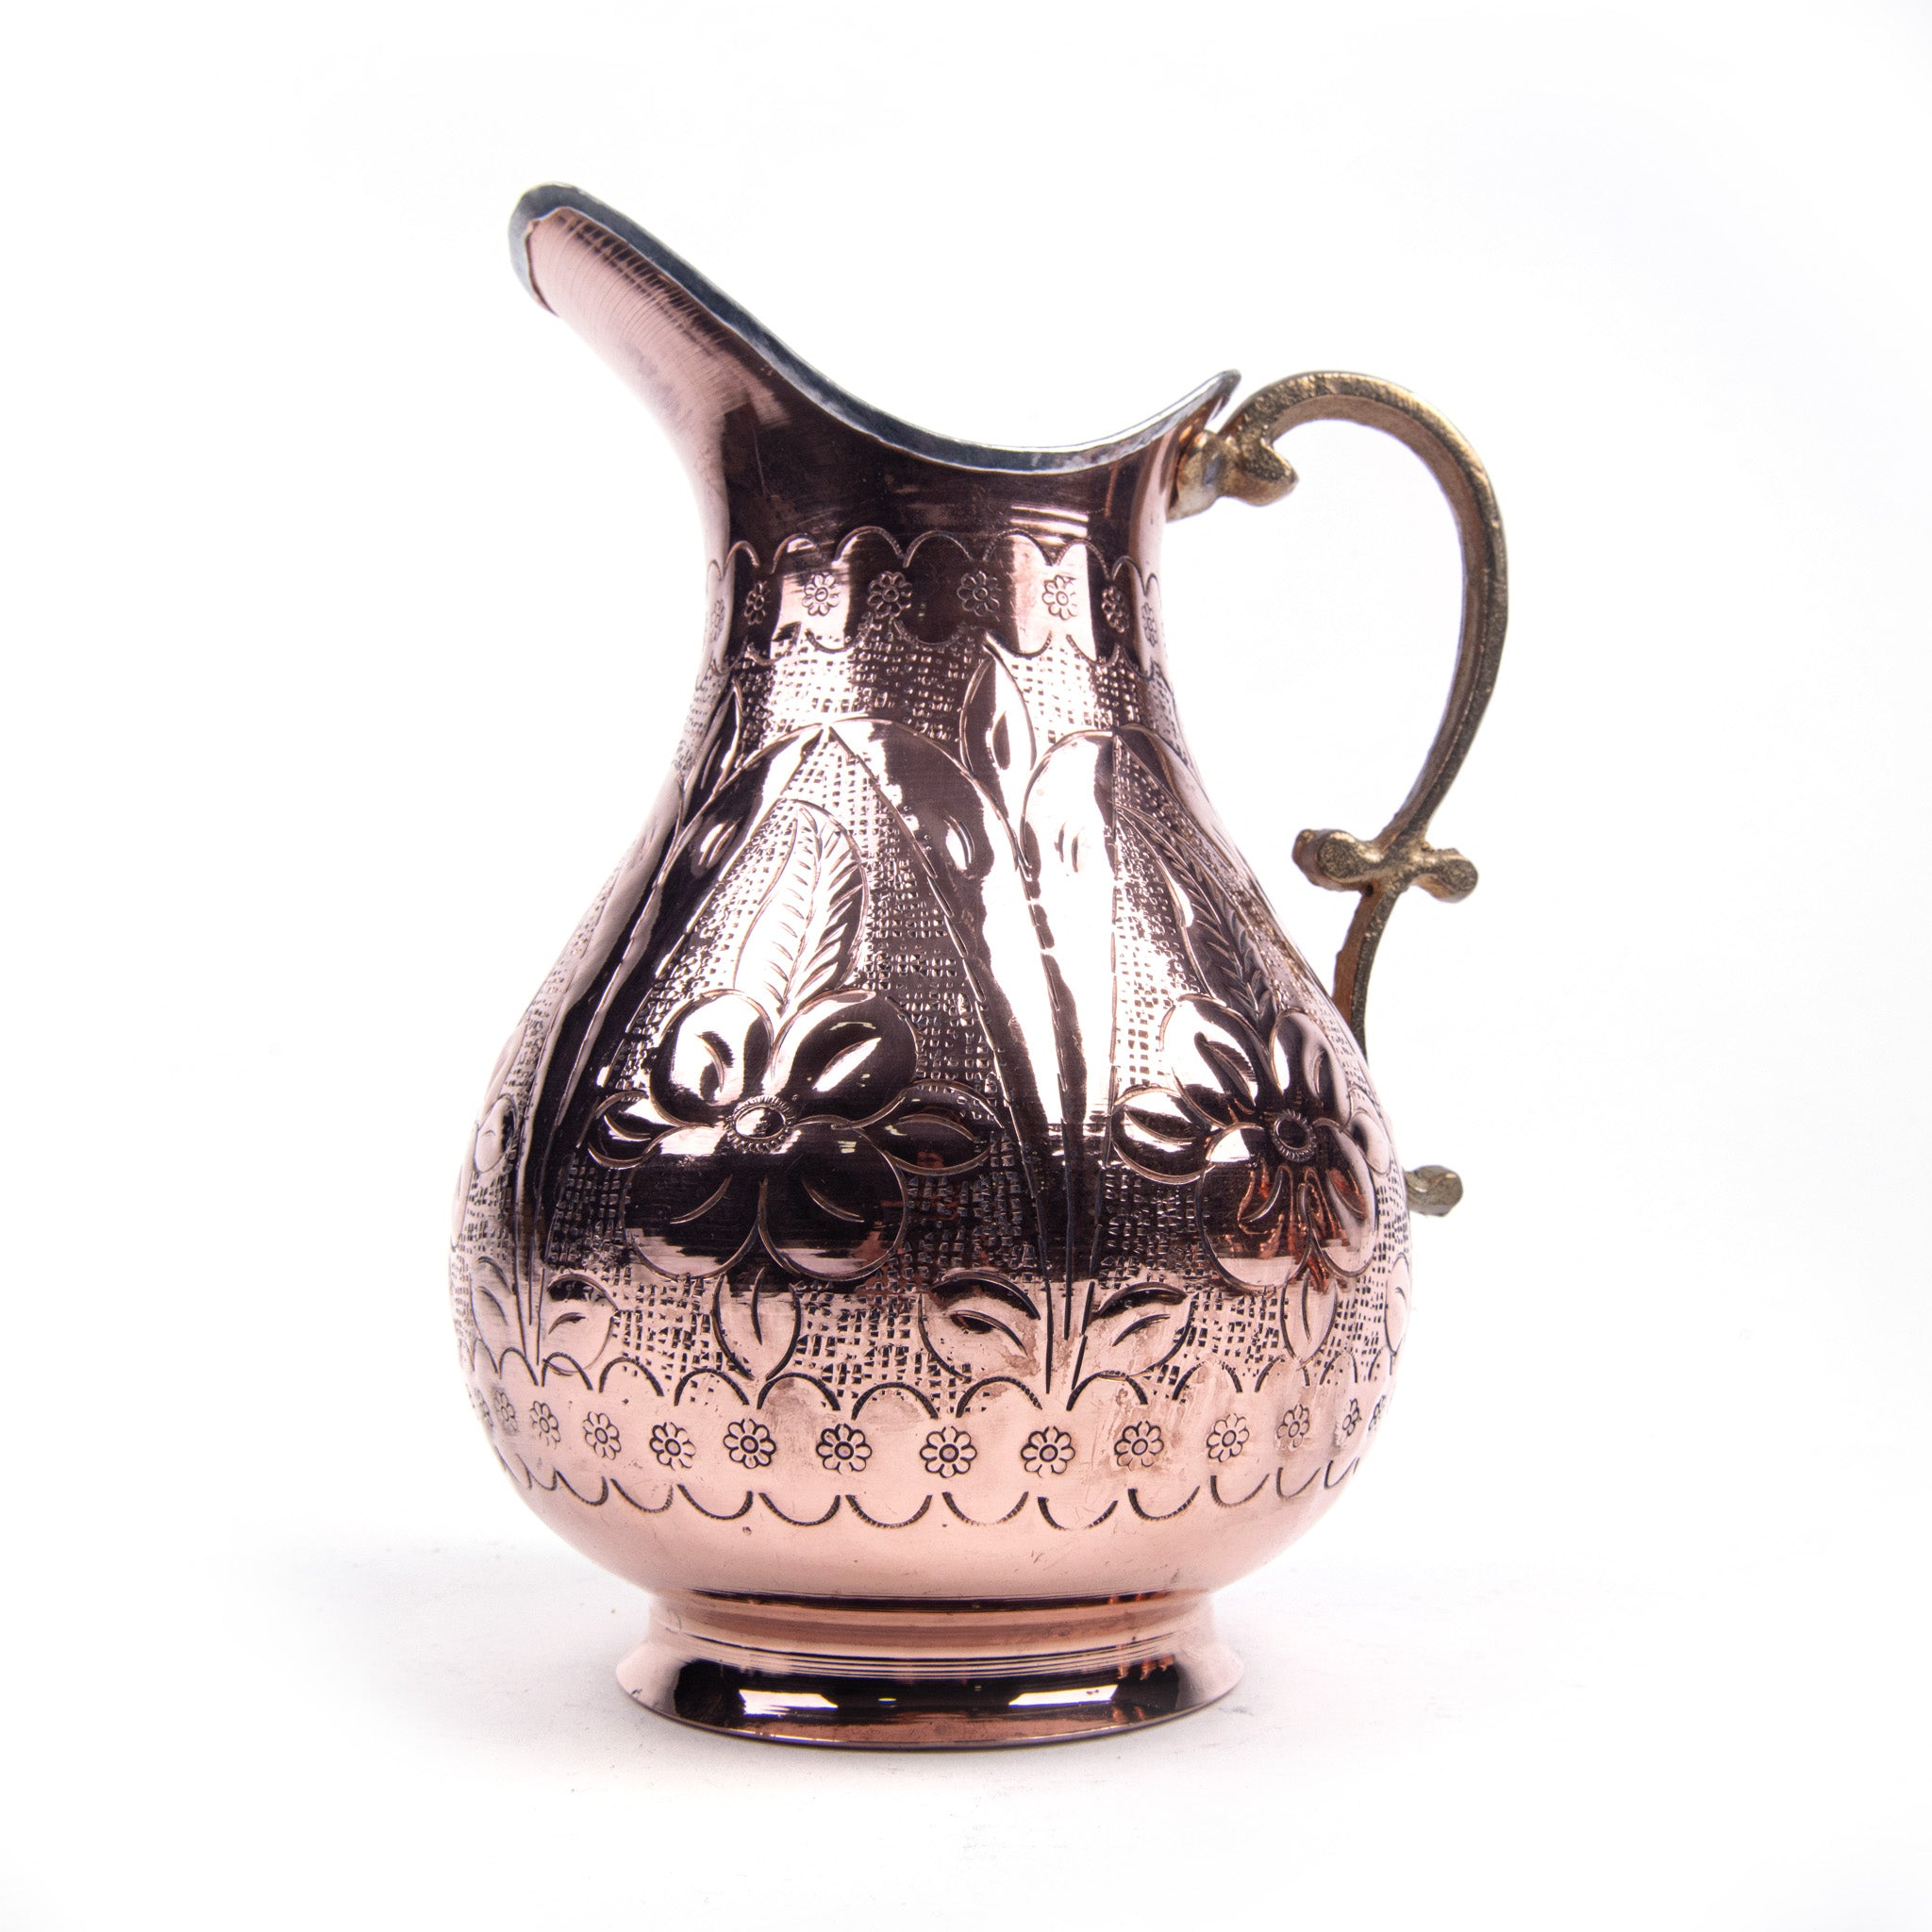 Engraved Embossed Handmade Copper Pitcher